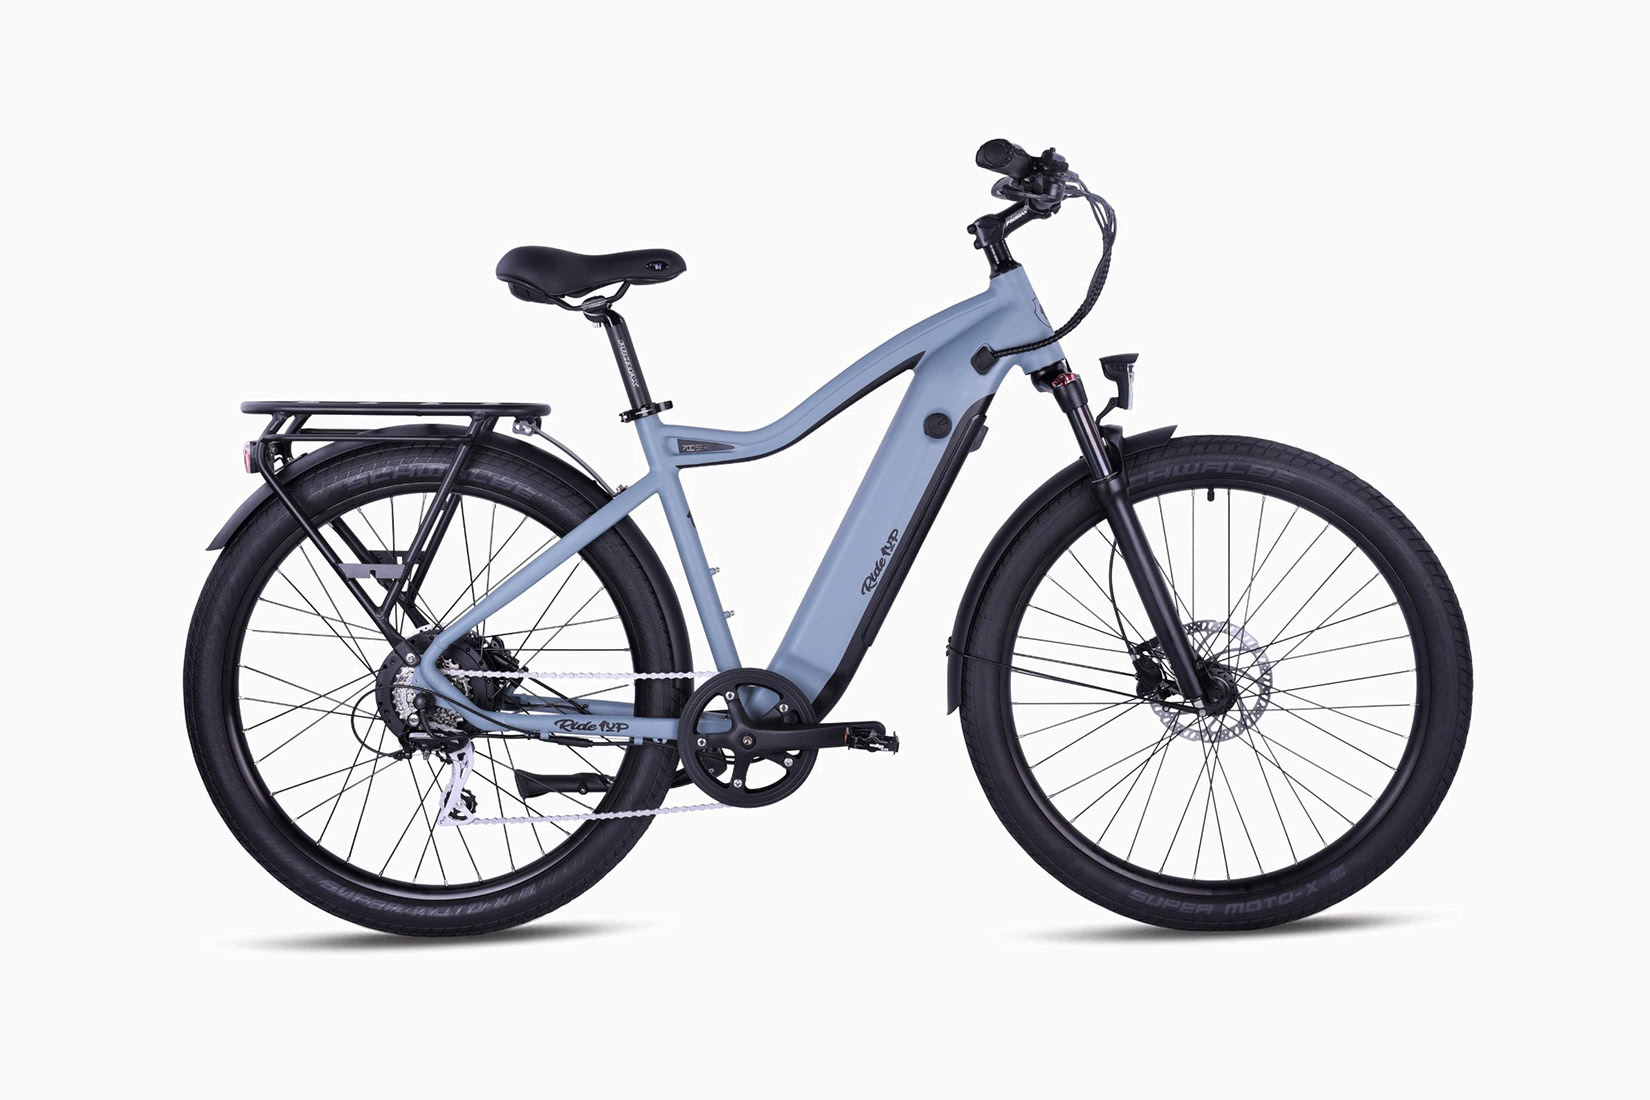 ride1up 700 series review electric all-terrain ebike luxe digital